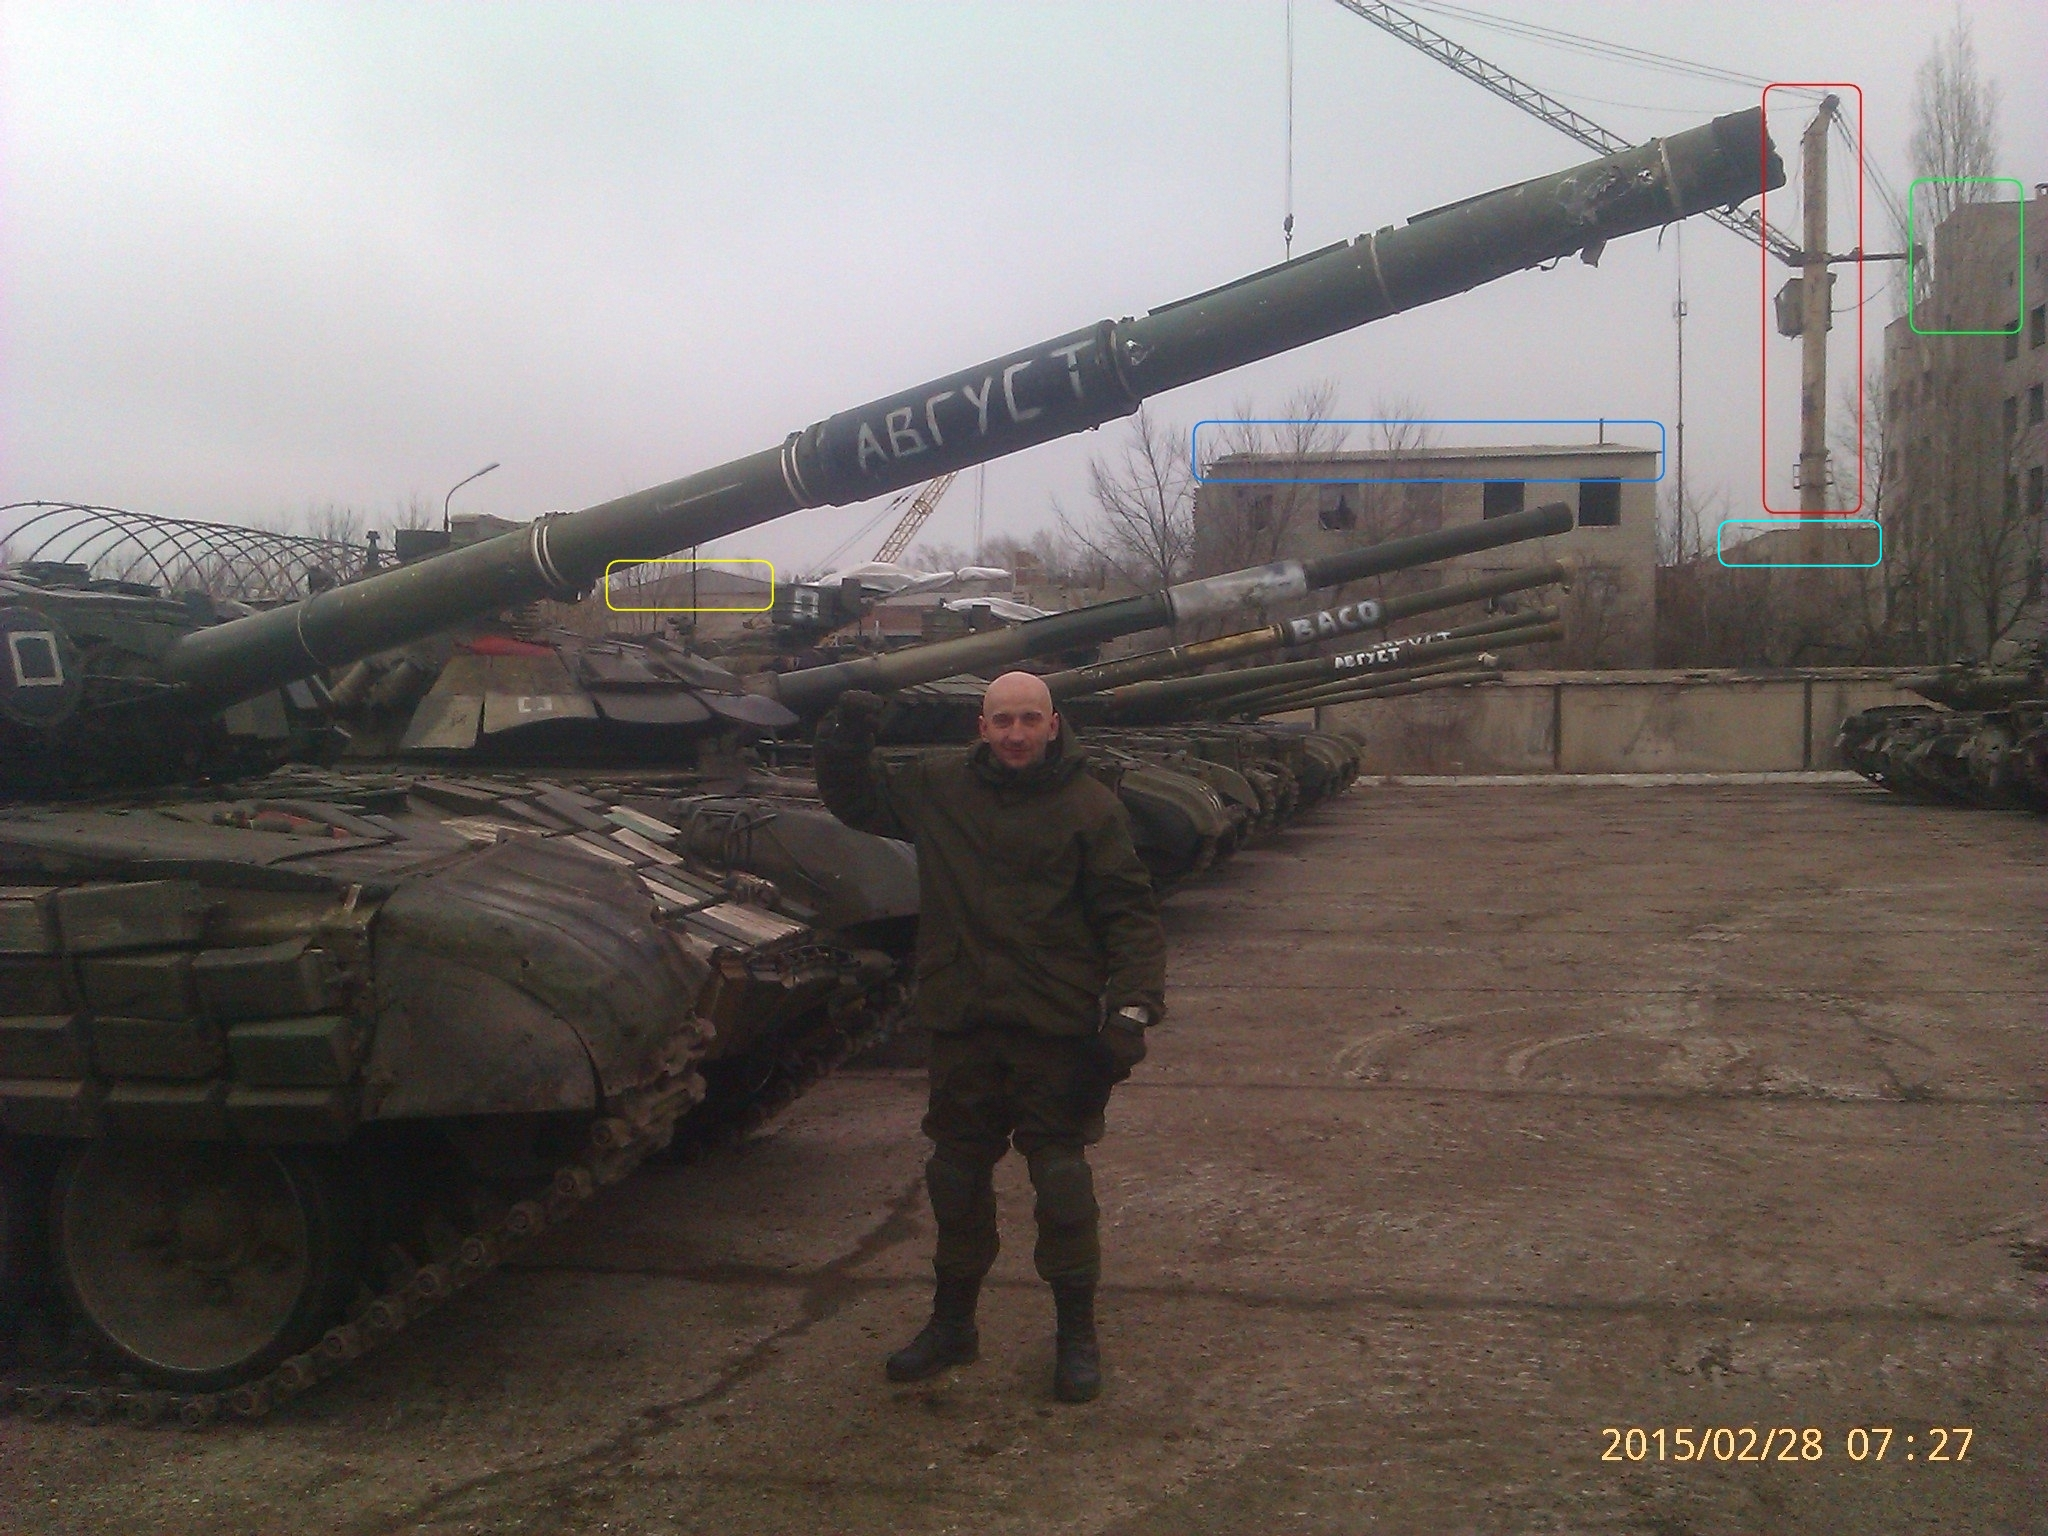 2nd raw of tansk on a Russian base in Lugansk